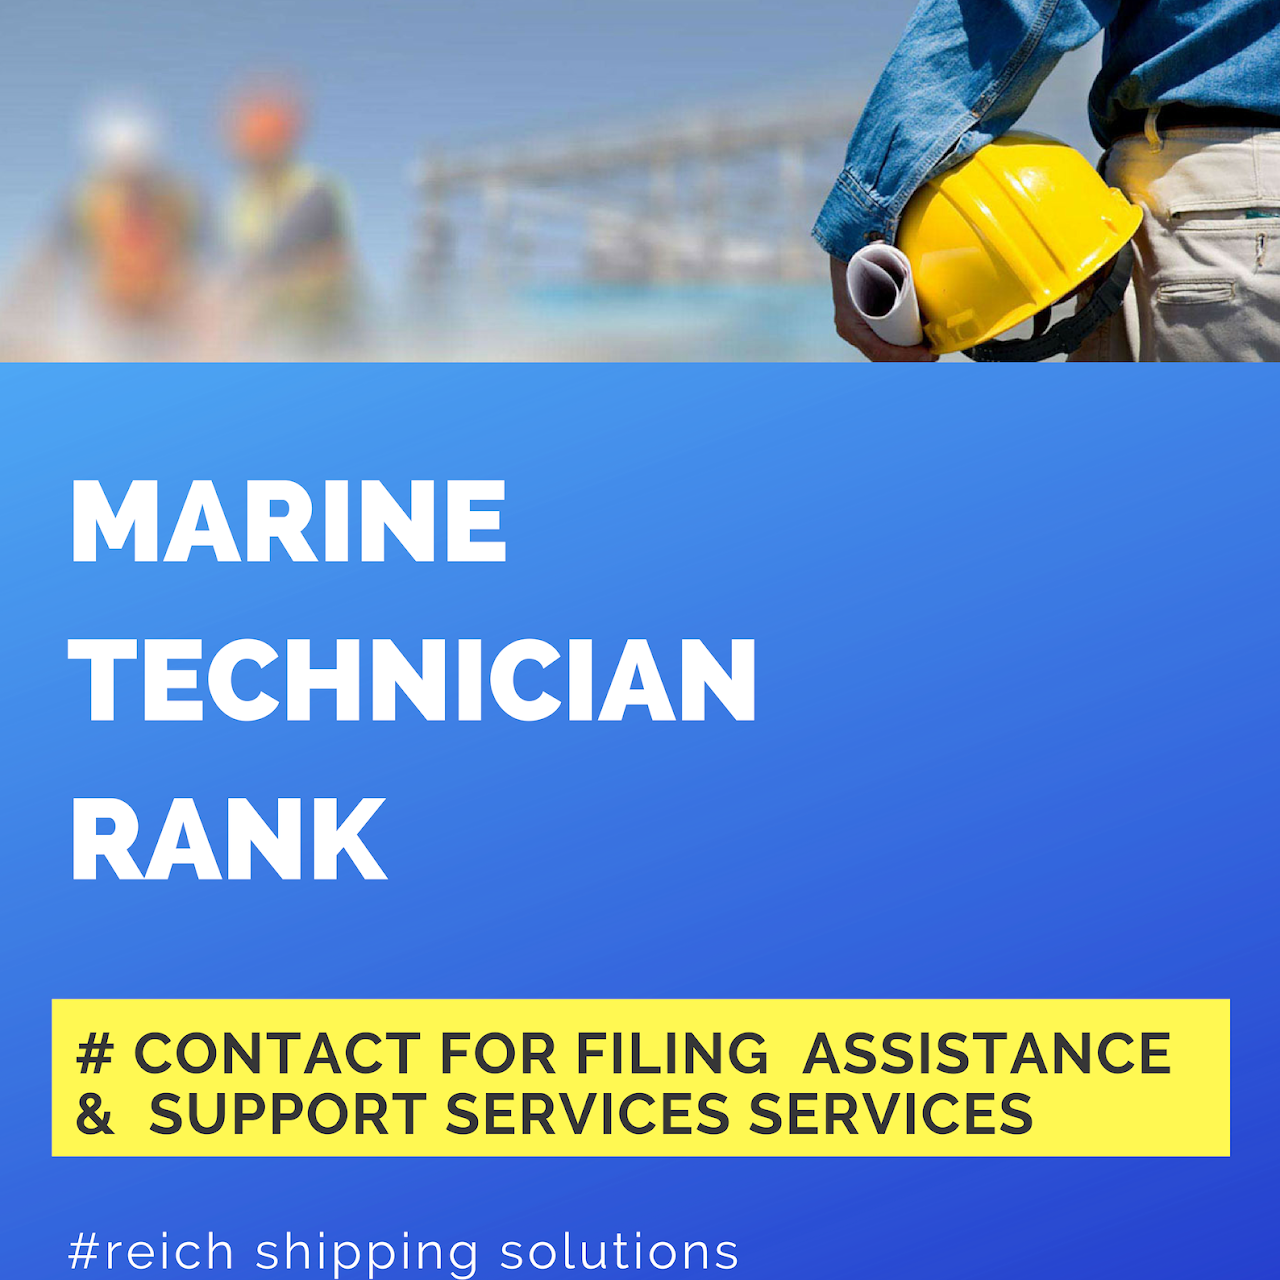 Reich Shipping Solutions (Filing Assistance - Seaman Books, CDC